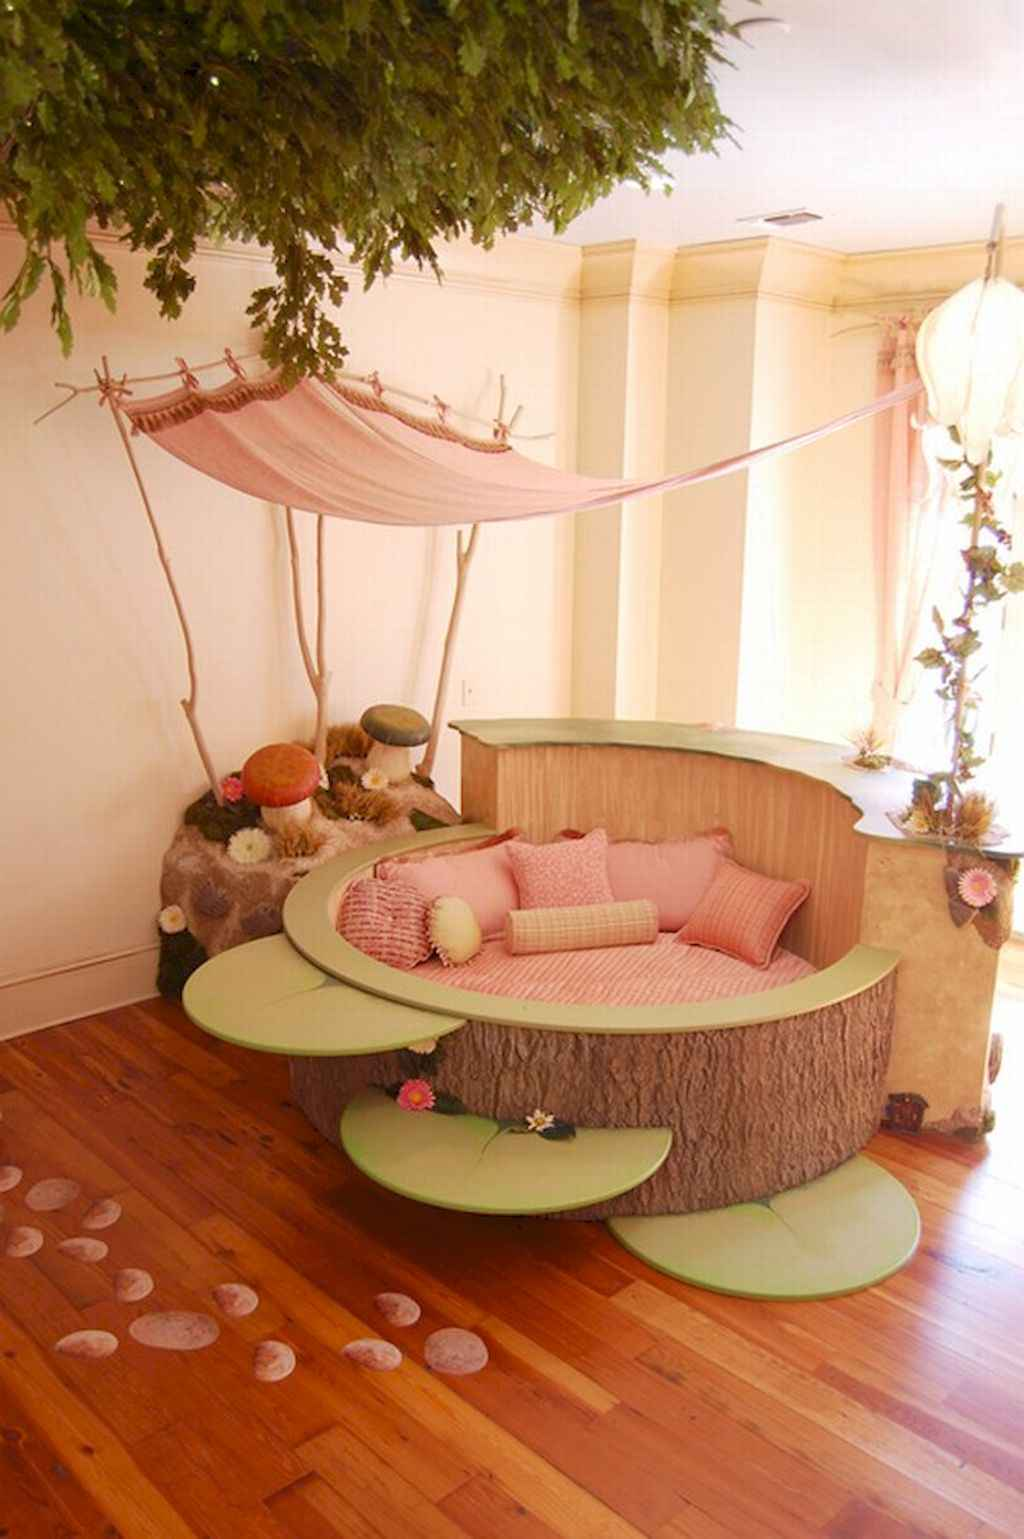 Awesome ideas bedroom for kids (17)